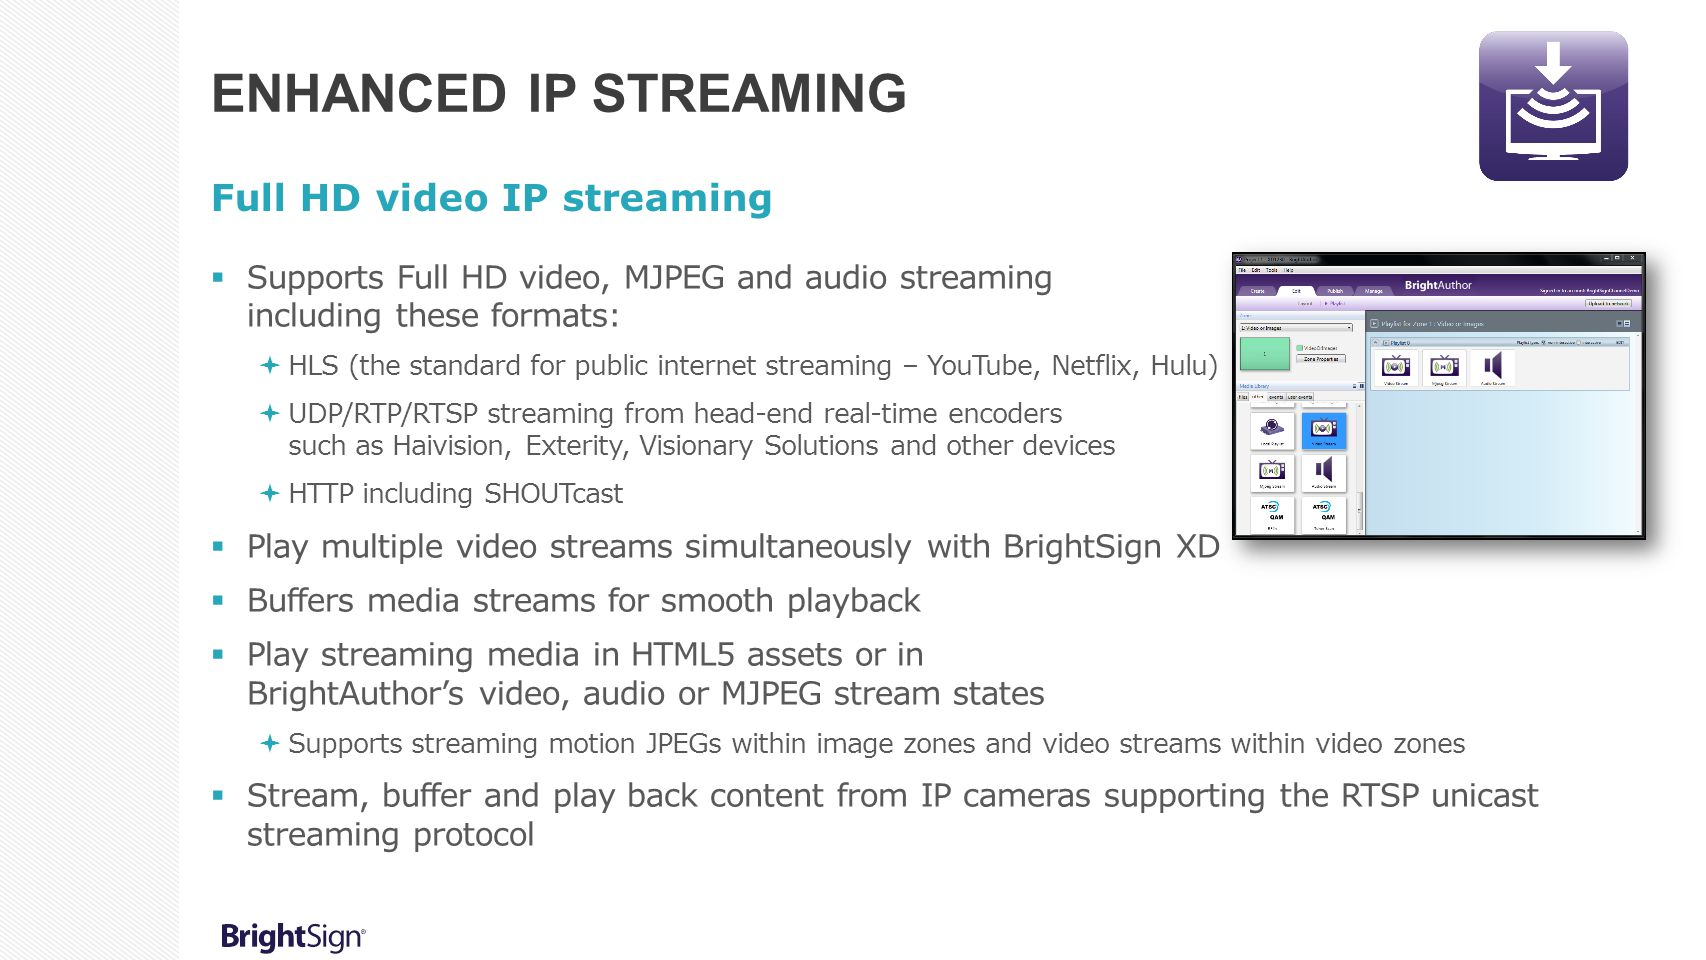 Enhanced IP Streaming Full HD video IP streaming